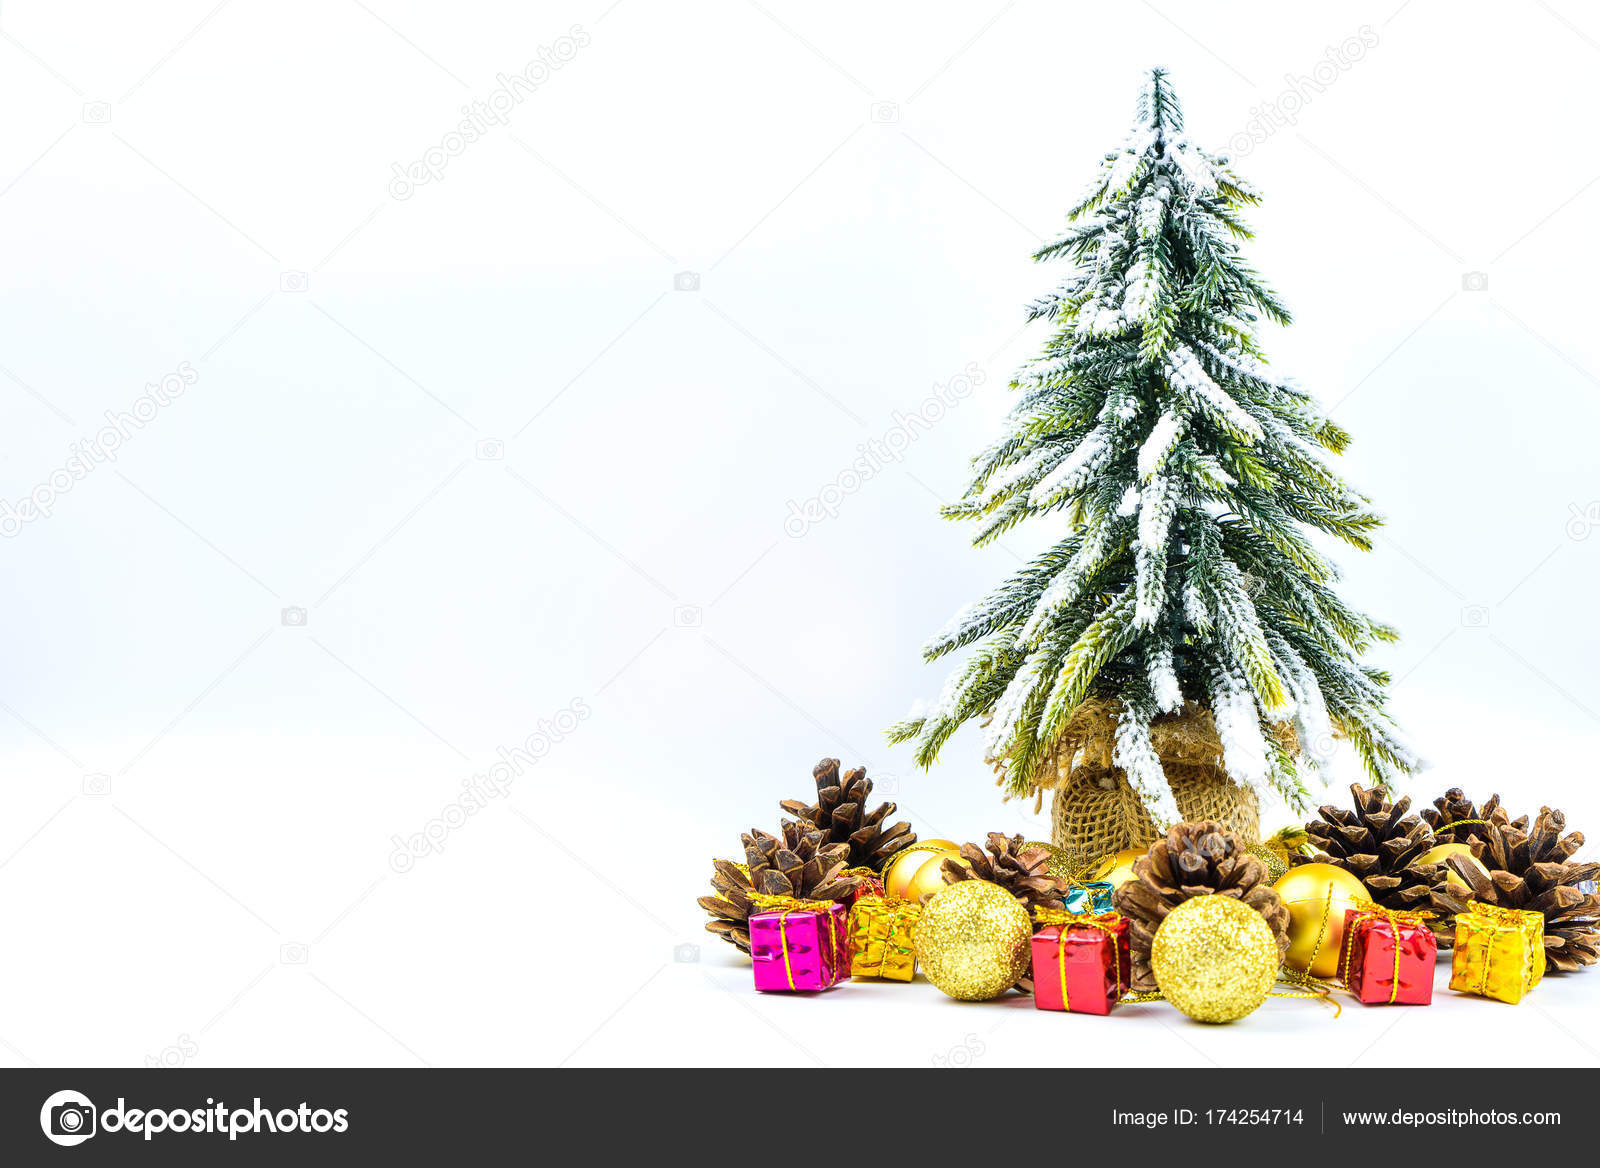 christmas or new year background with pine conesgift boxgolden ball and pine tree of xmas decorations and fir branches flat lay blank space for a